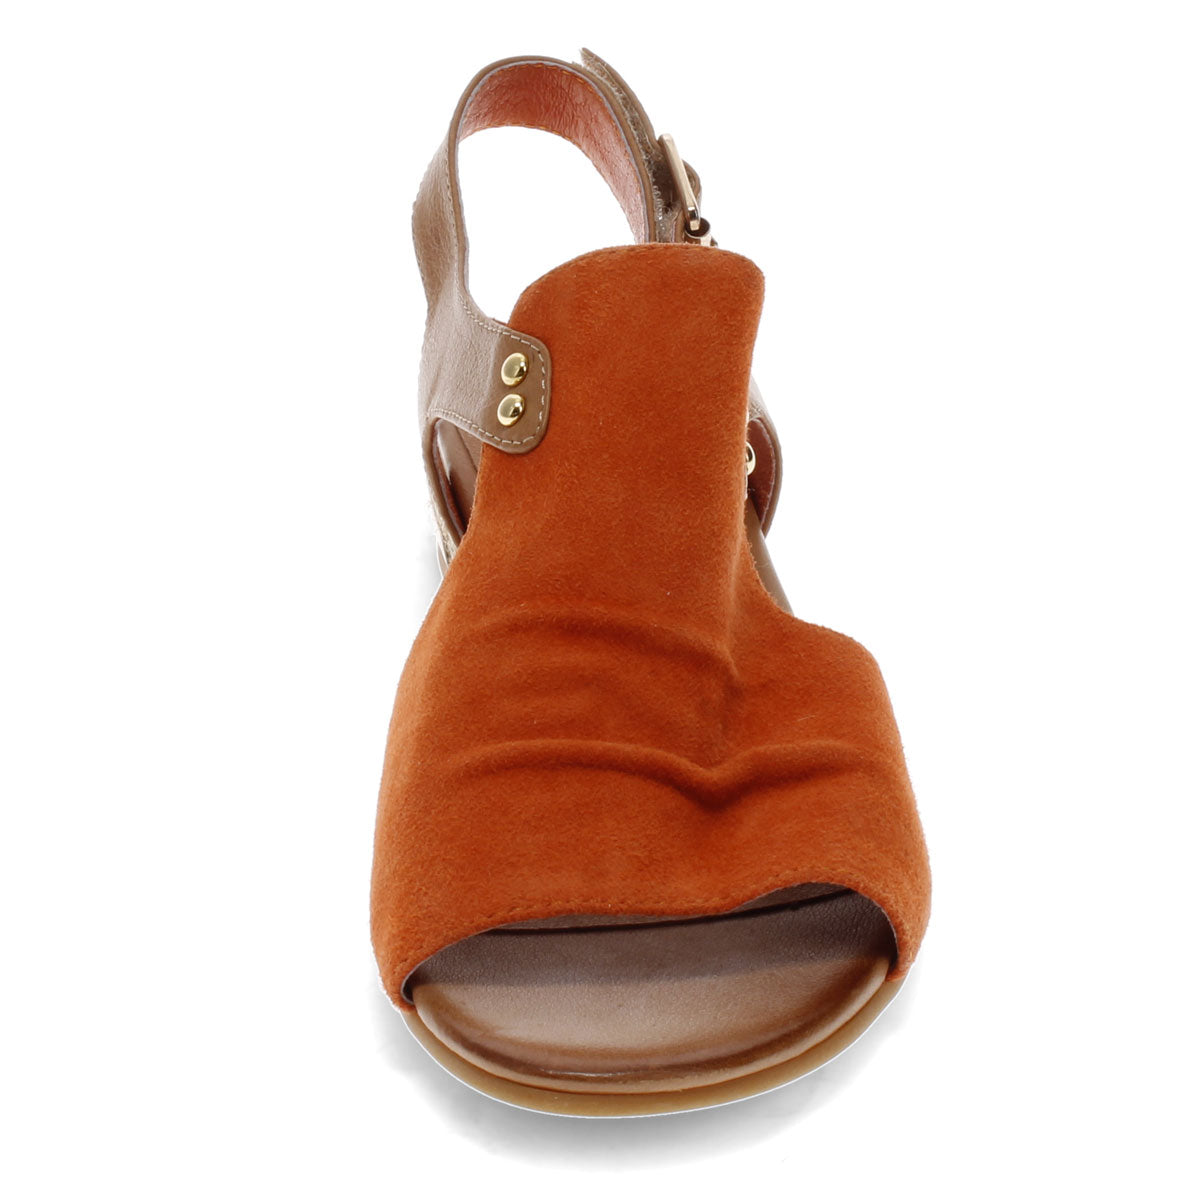 ORANGE-TAN SUEDE | Front